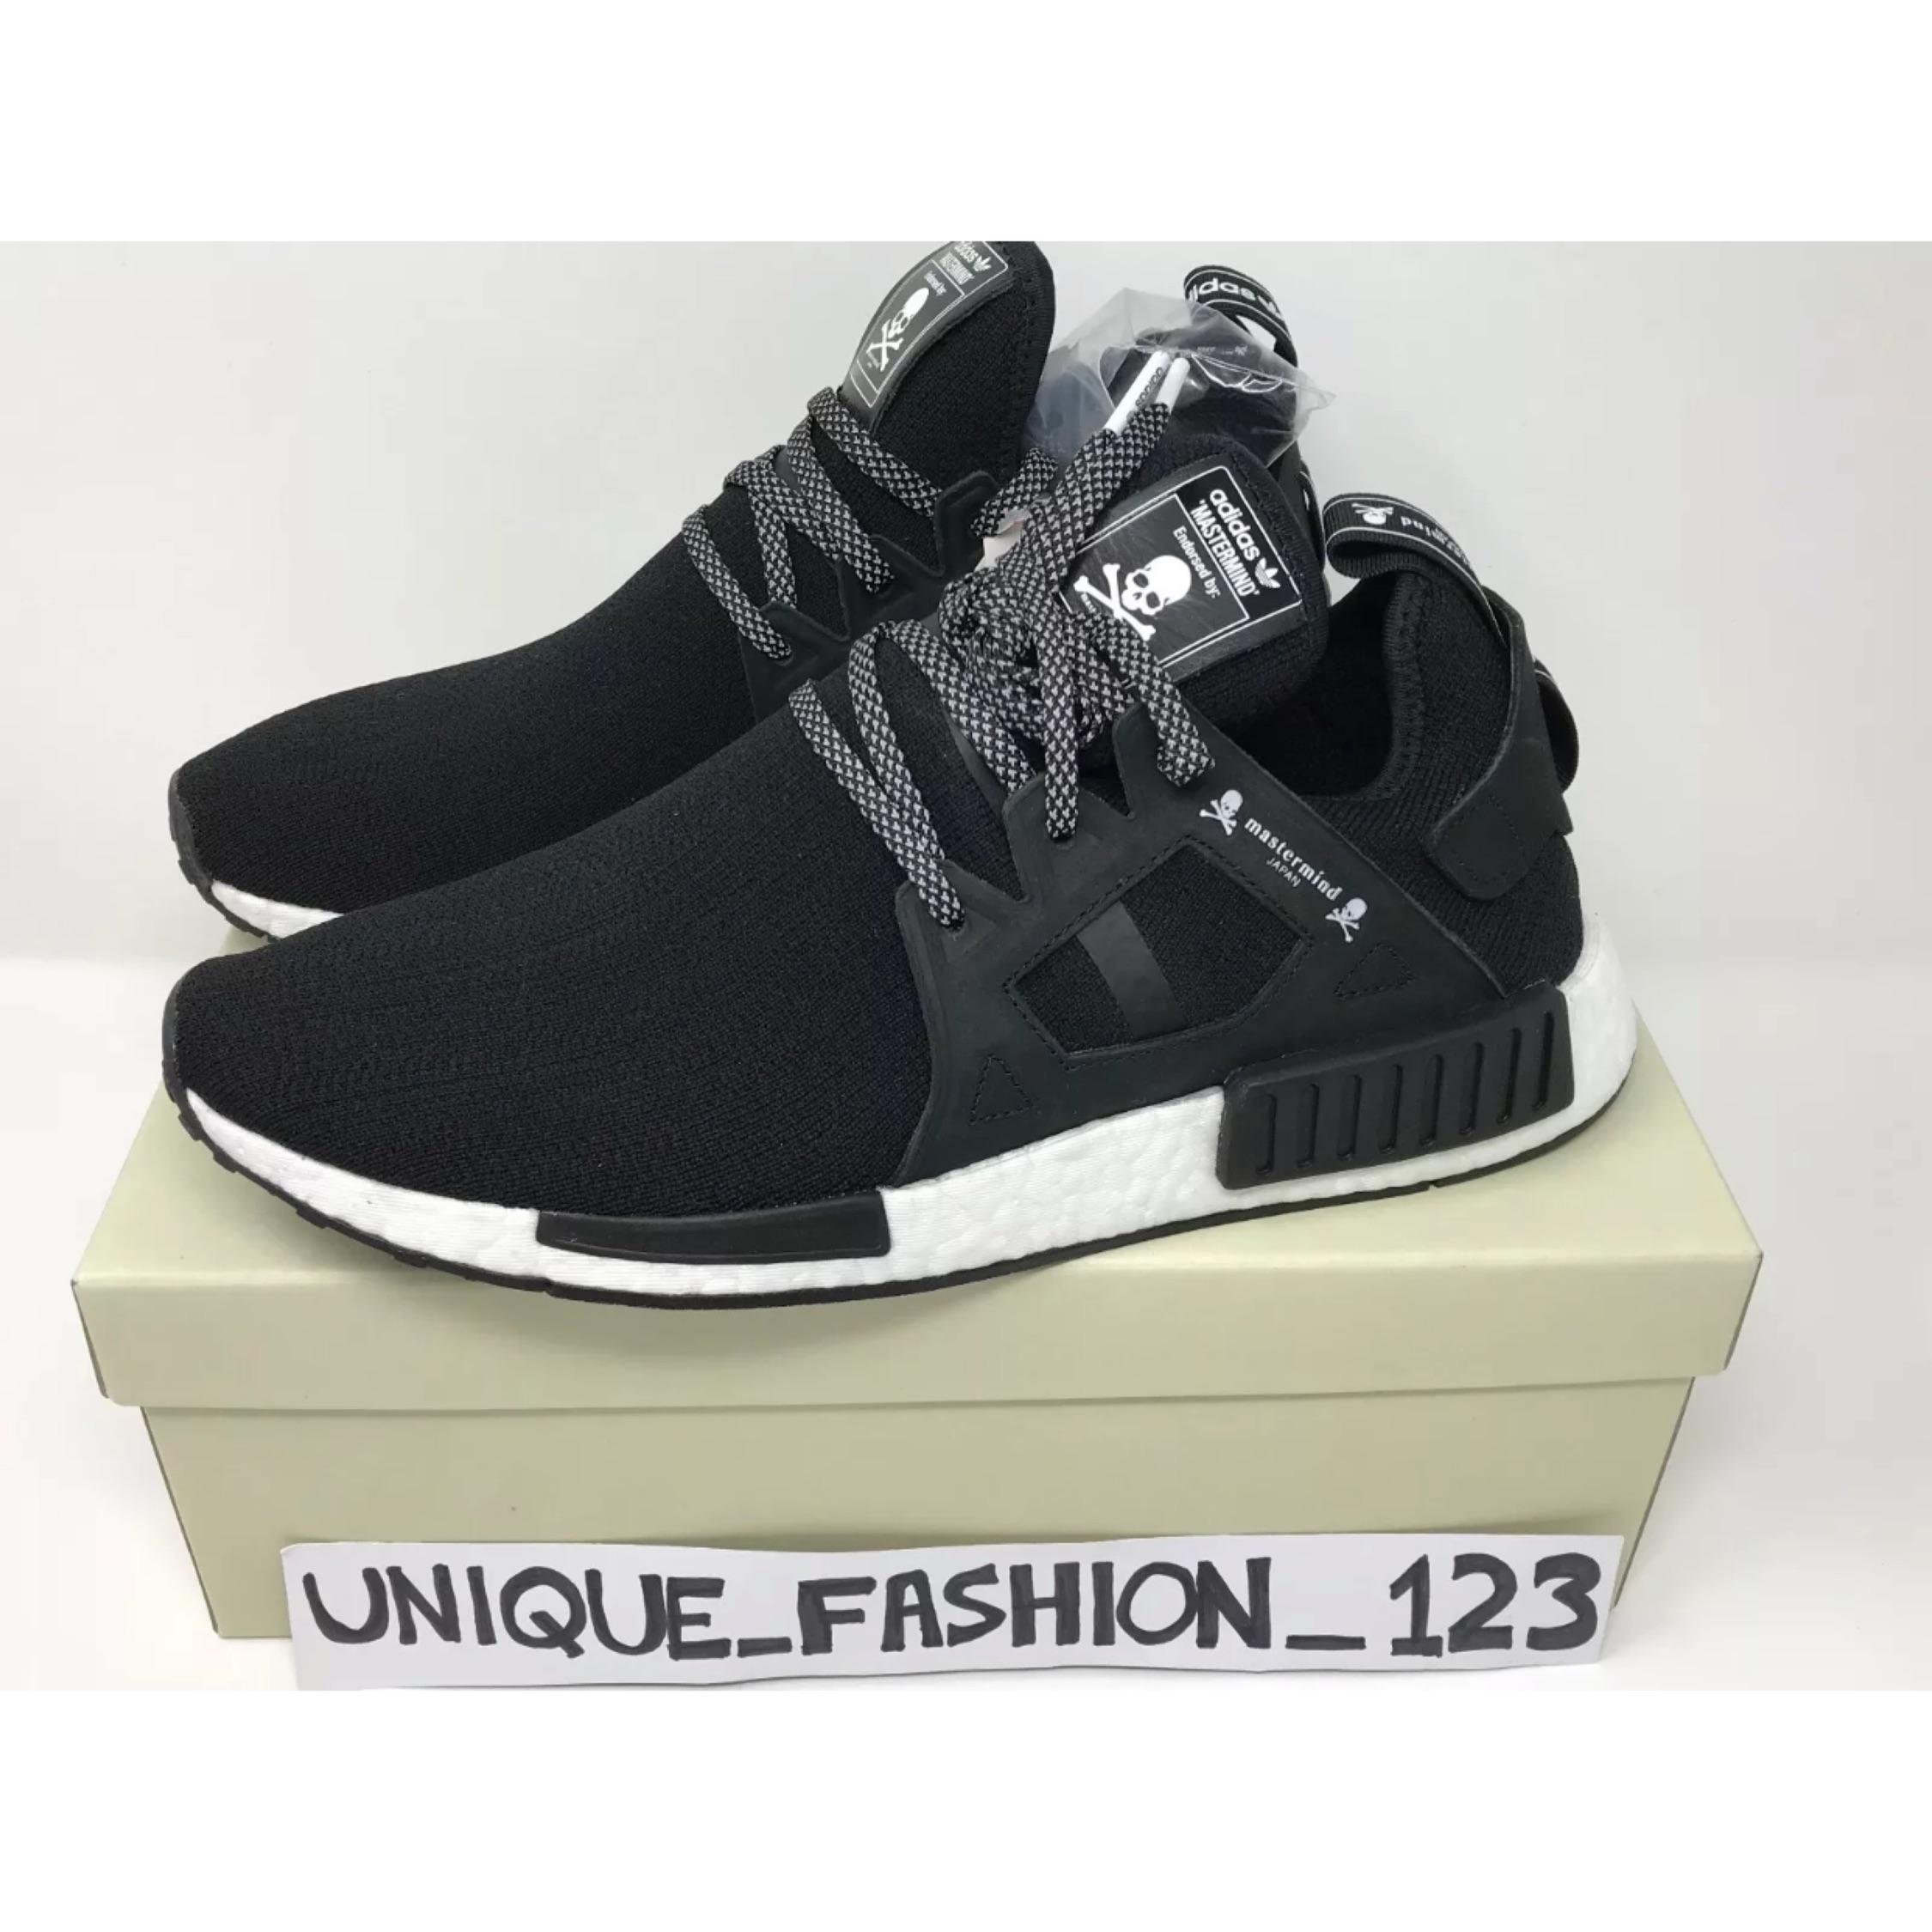 cheap for discount e04f2 5f80d Adidas Nmd Xr1 X Mastermind Black Japan Consortium